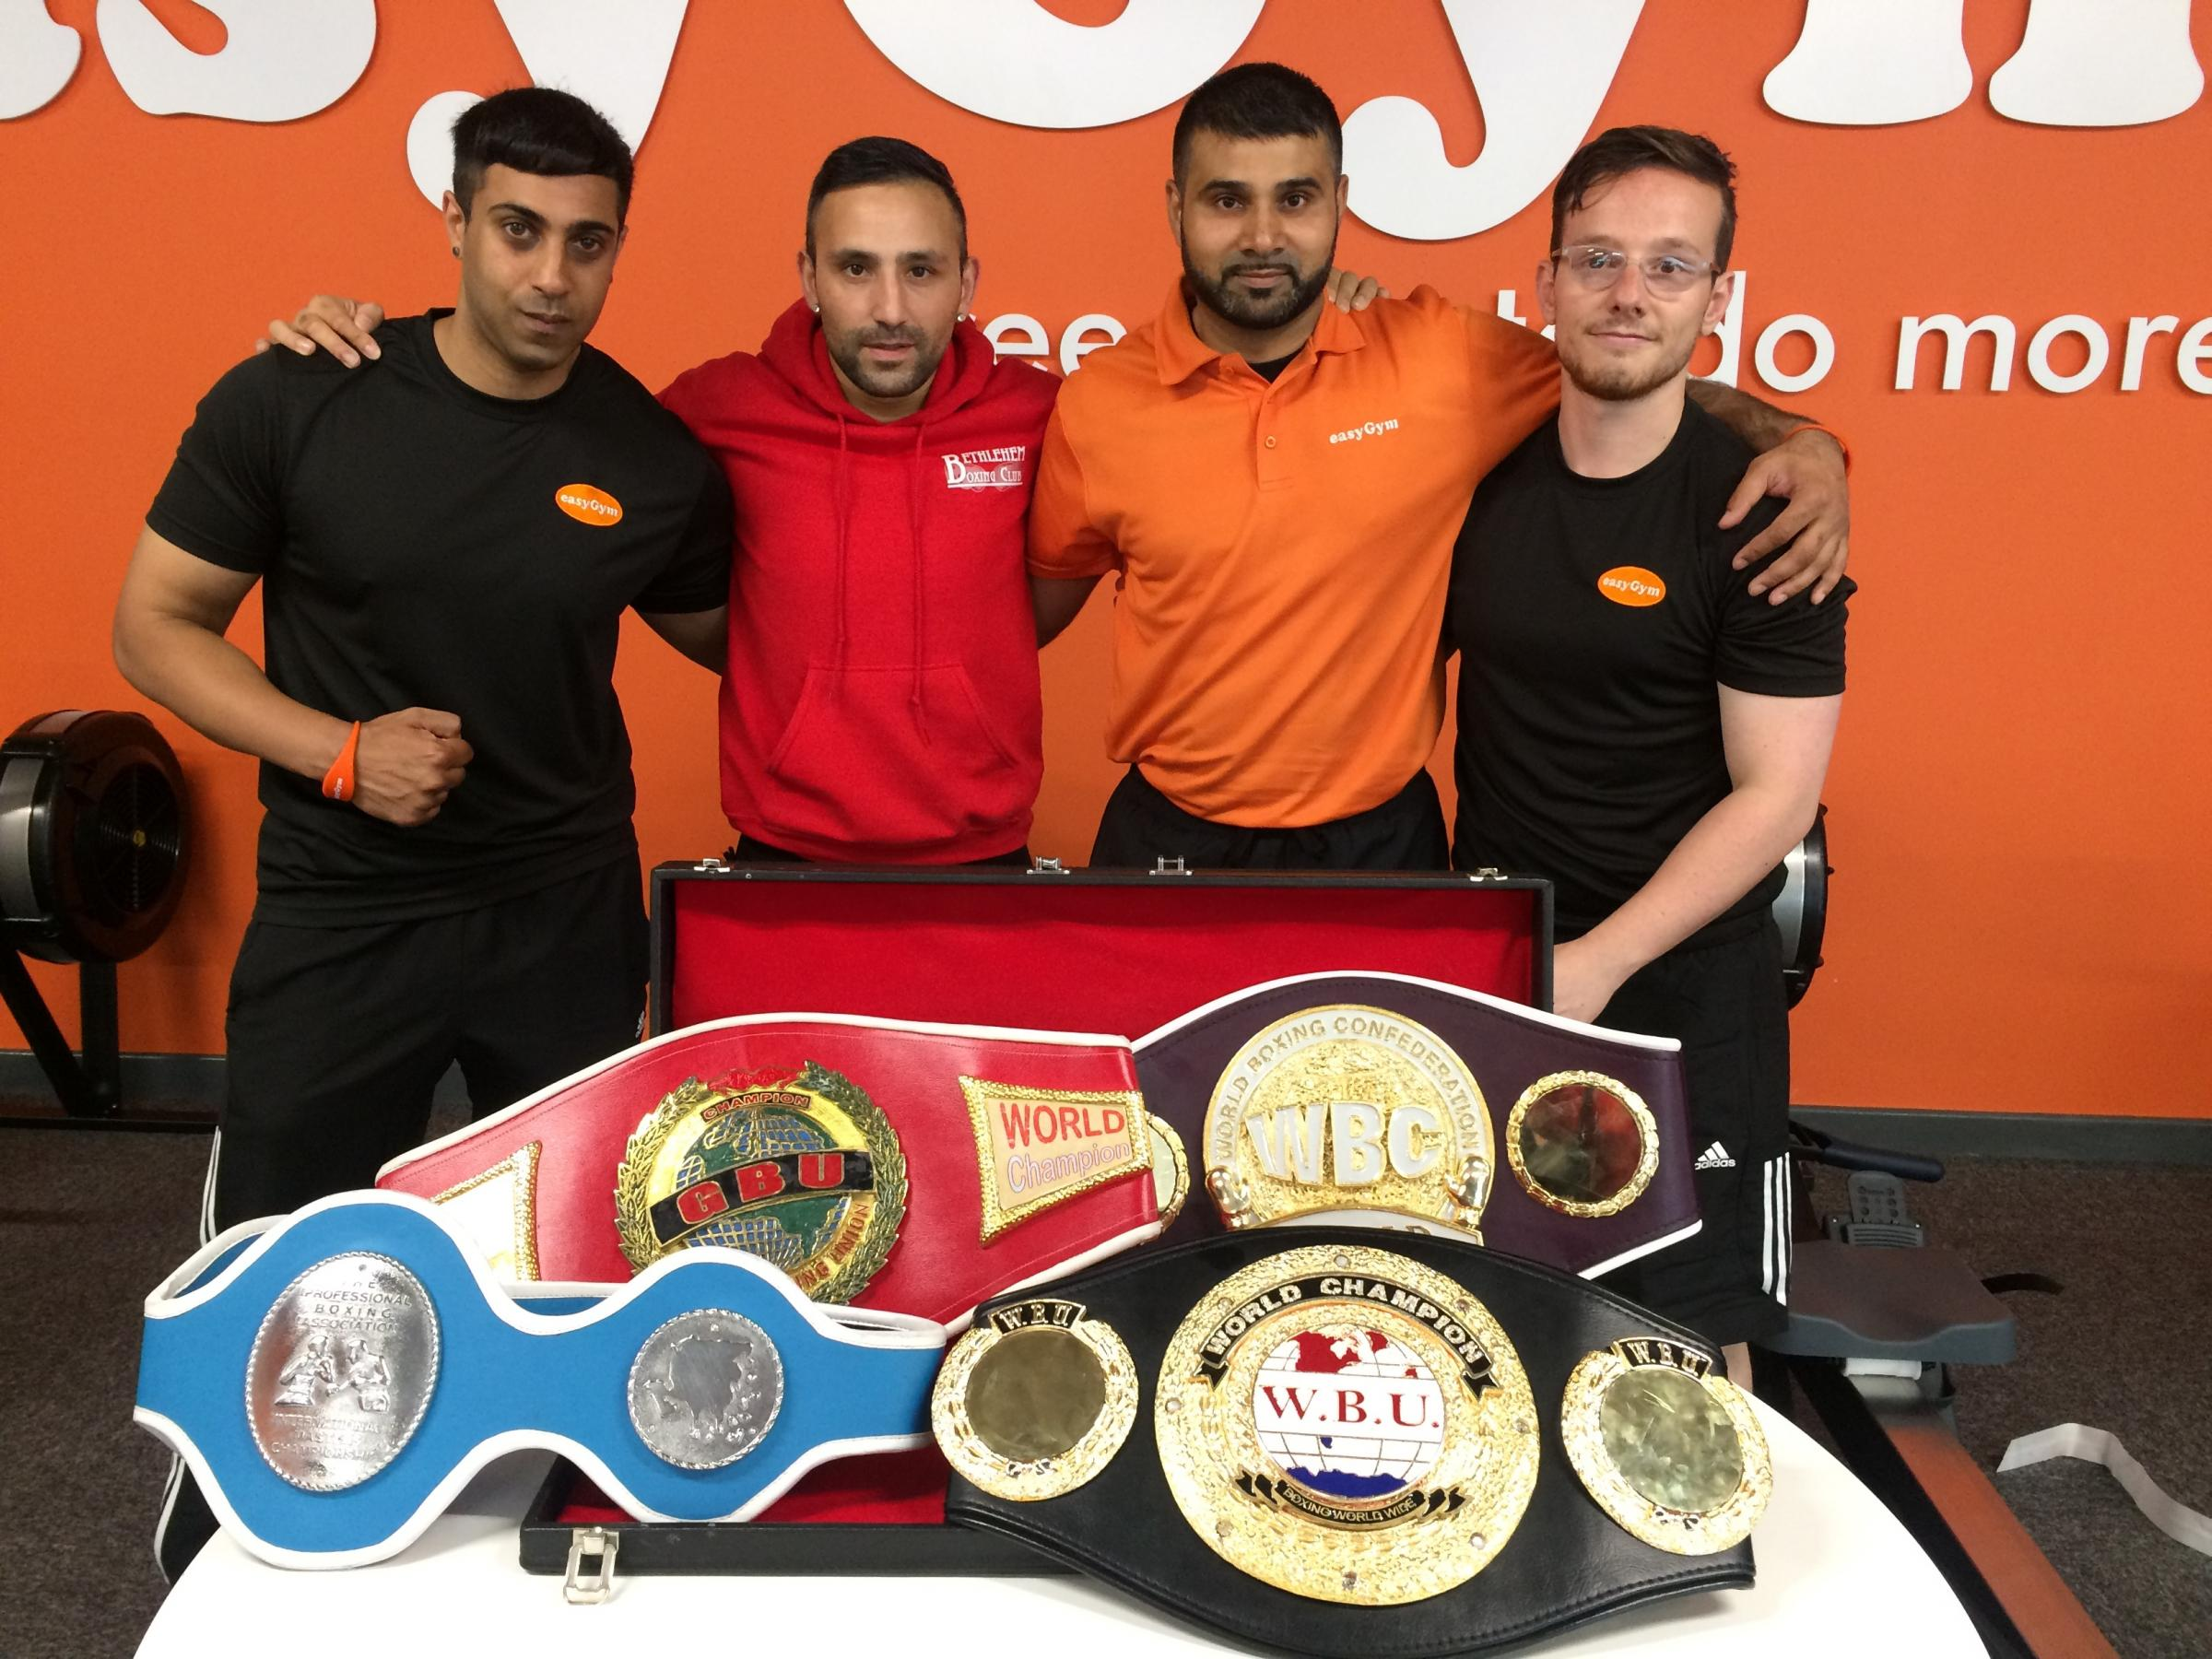 The launch of the new easyGym in Bradford